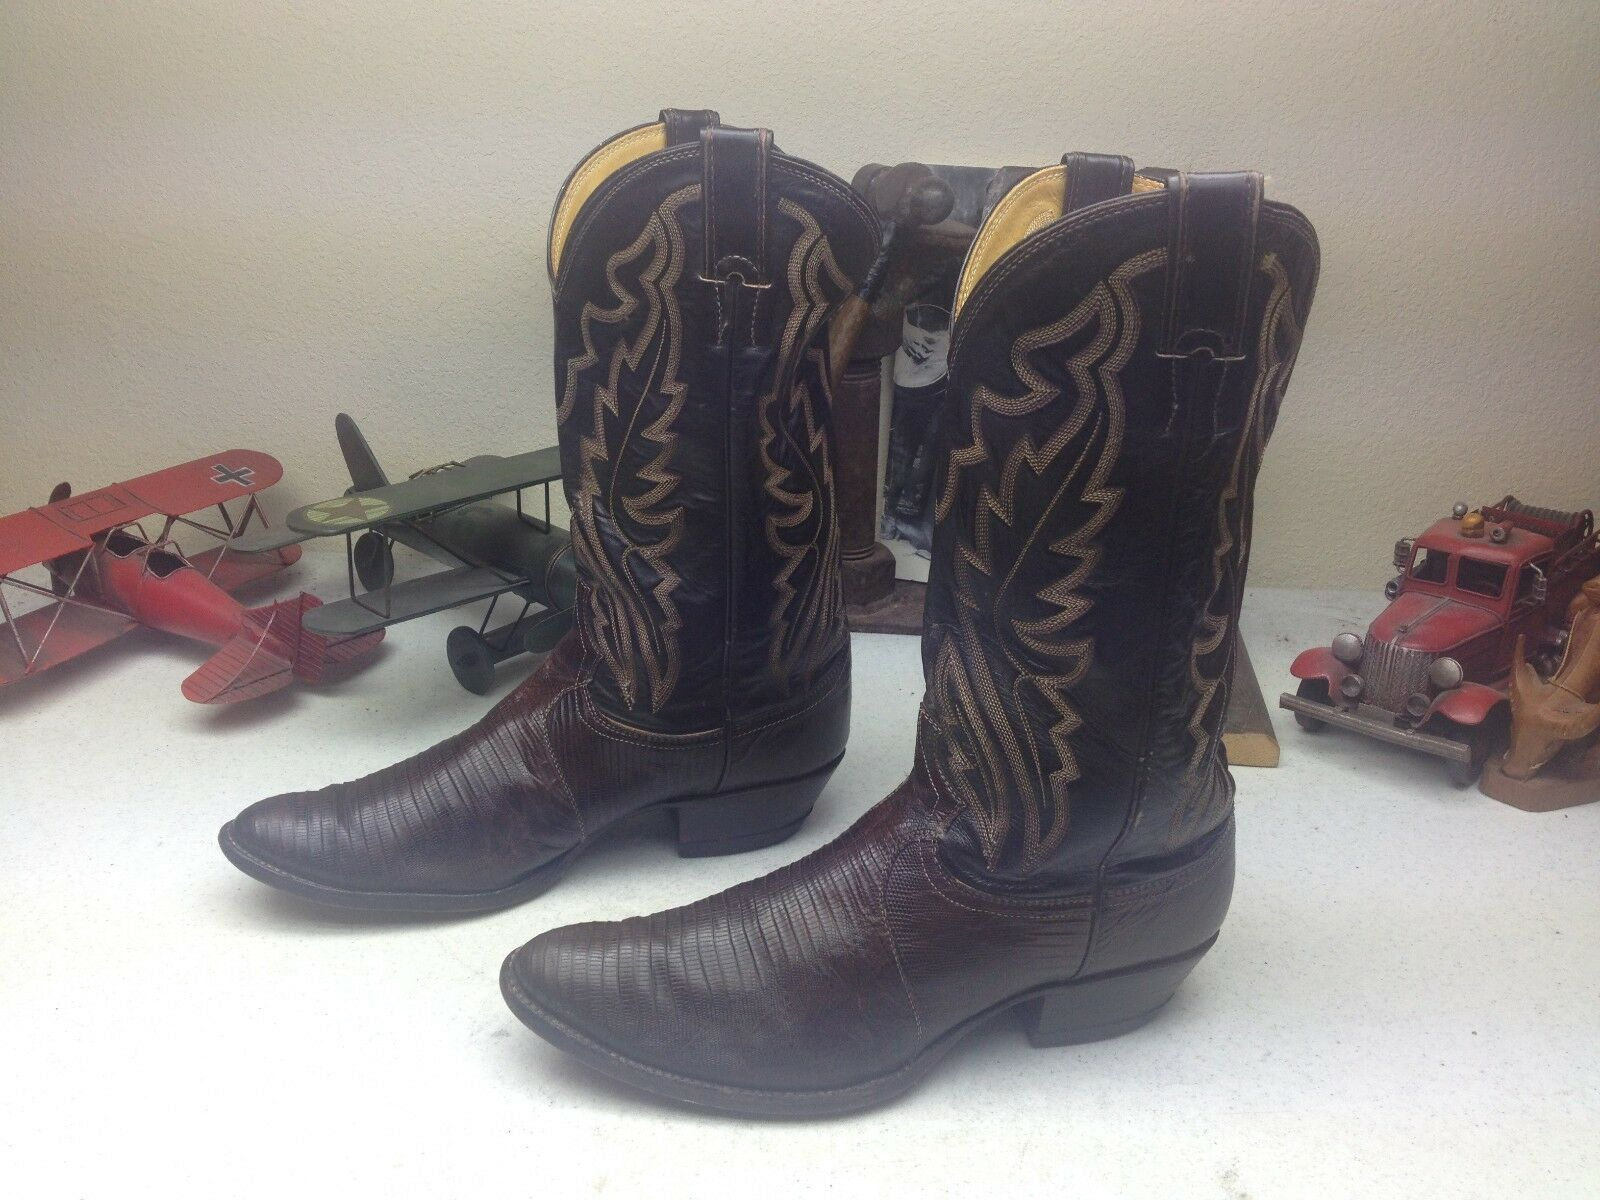 WORN JUSTIN USA BROWN LEATHER LIZARD WESTERN COWBOY ENGINEER BOSS BOOTS 10.5 D